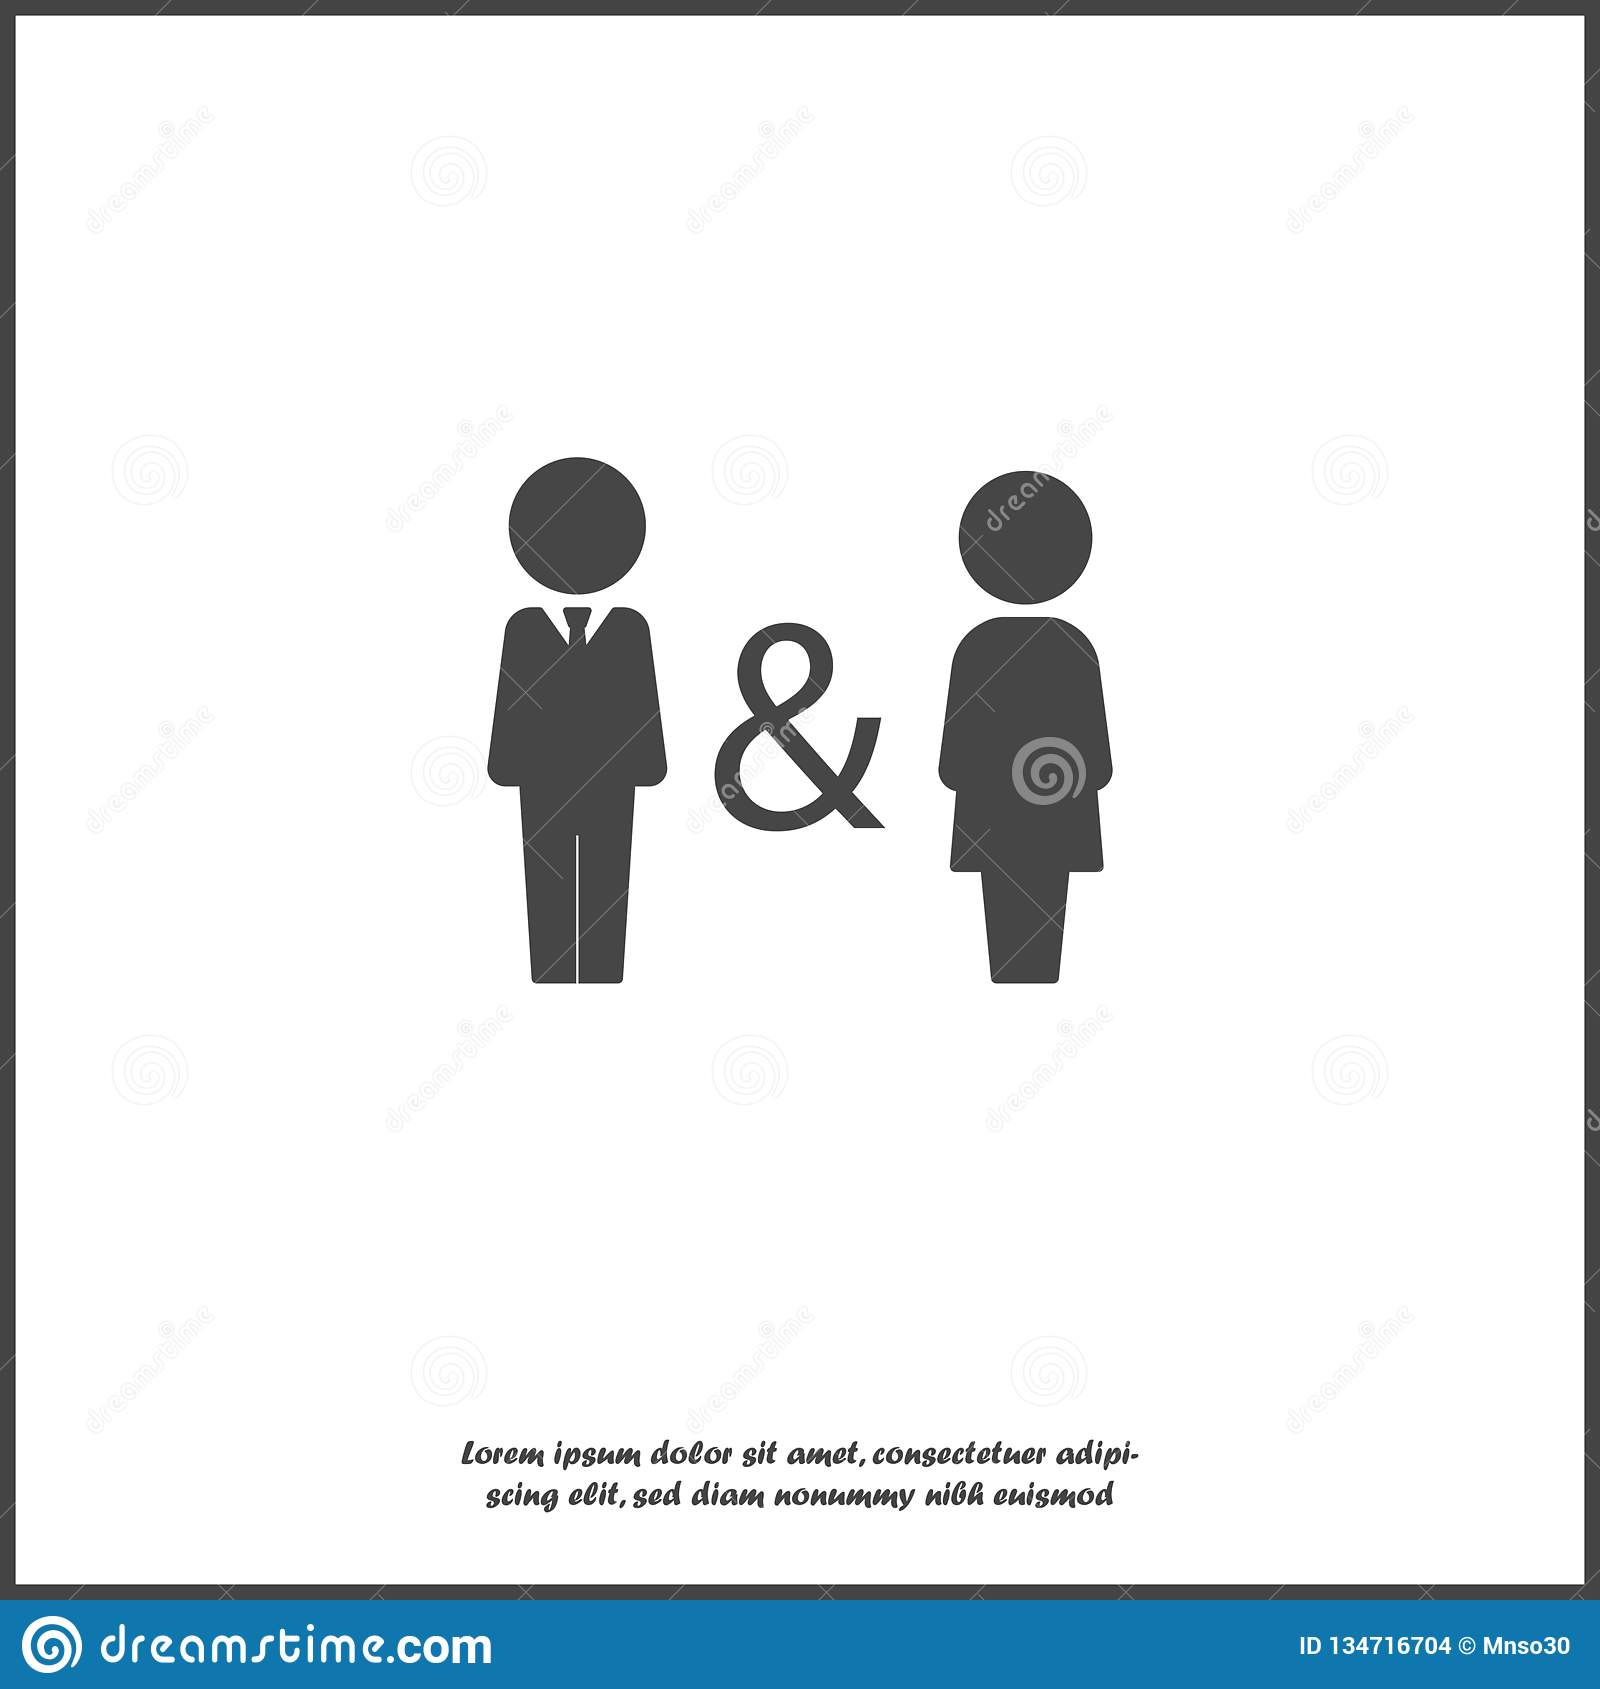 Vector icon of man and woman. Family symbol of proximity, support, compatibility. Joint life, life and work of men and women.